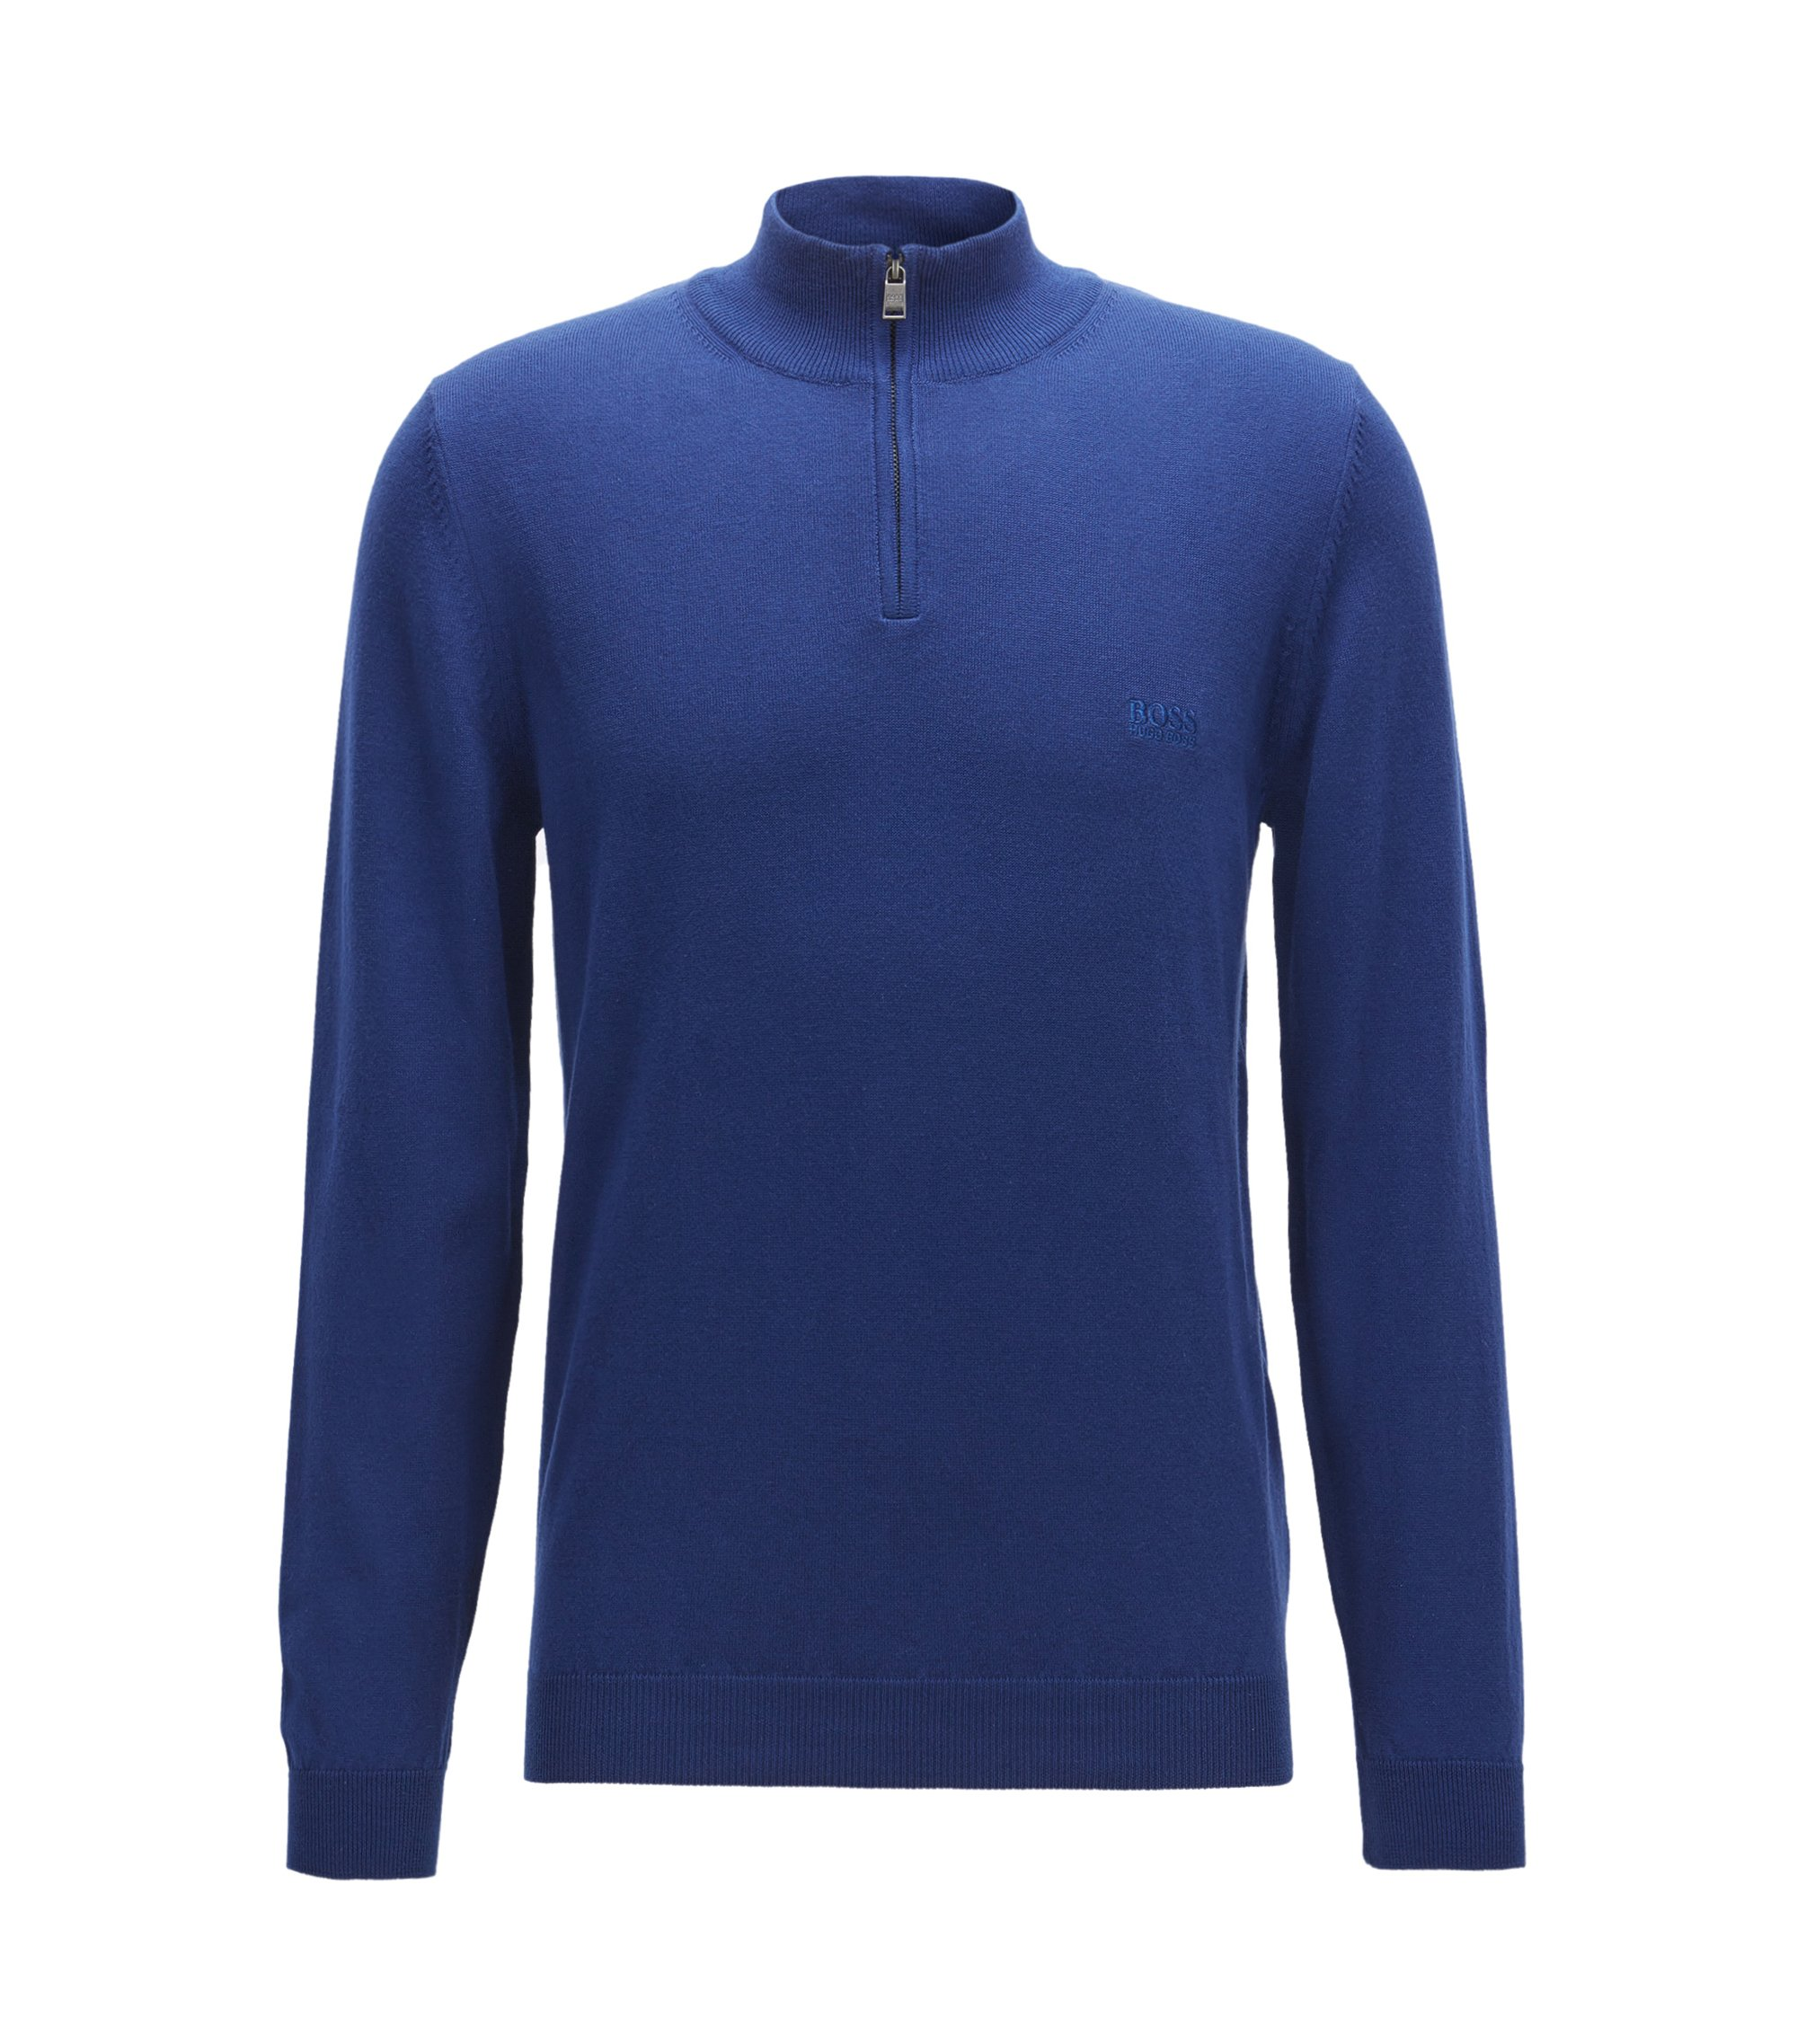 Regular-fit zip-neck sweater in Italian cotton, Blue